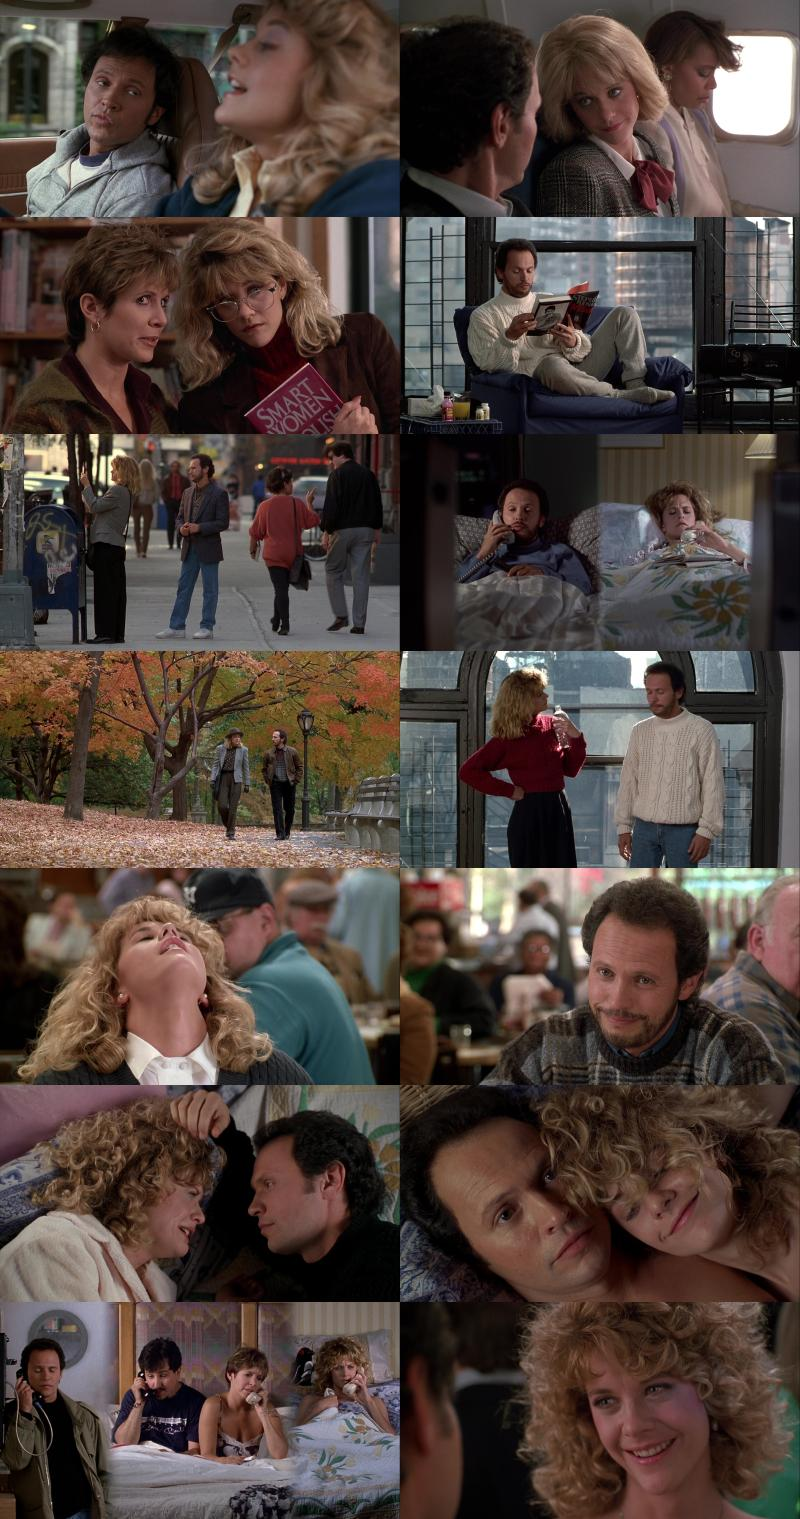 http://watershade.net/public/when-harry-met-sally.jpg